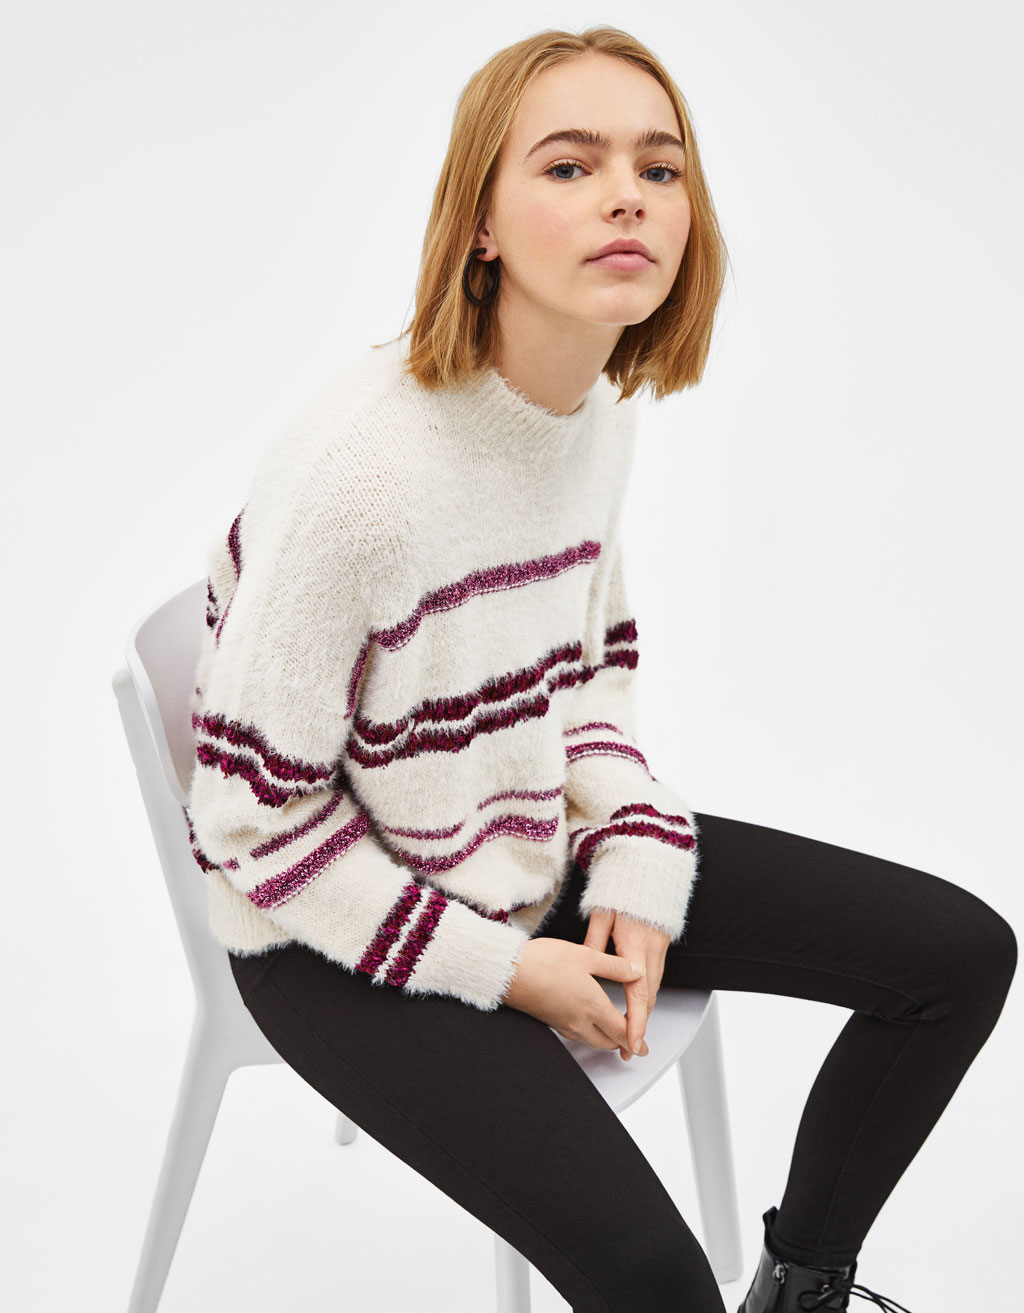 Sheepskin sweater with metallic stripes